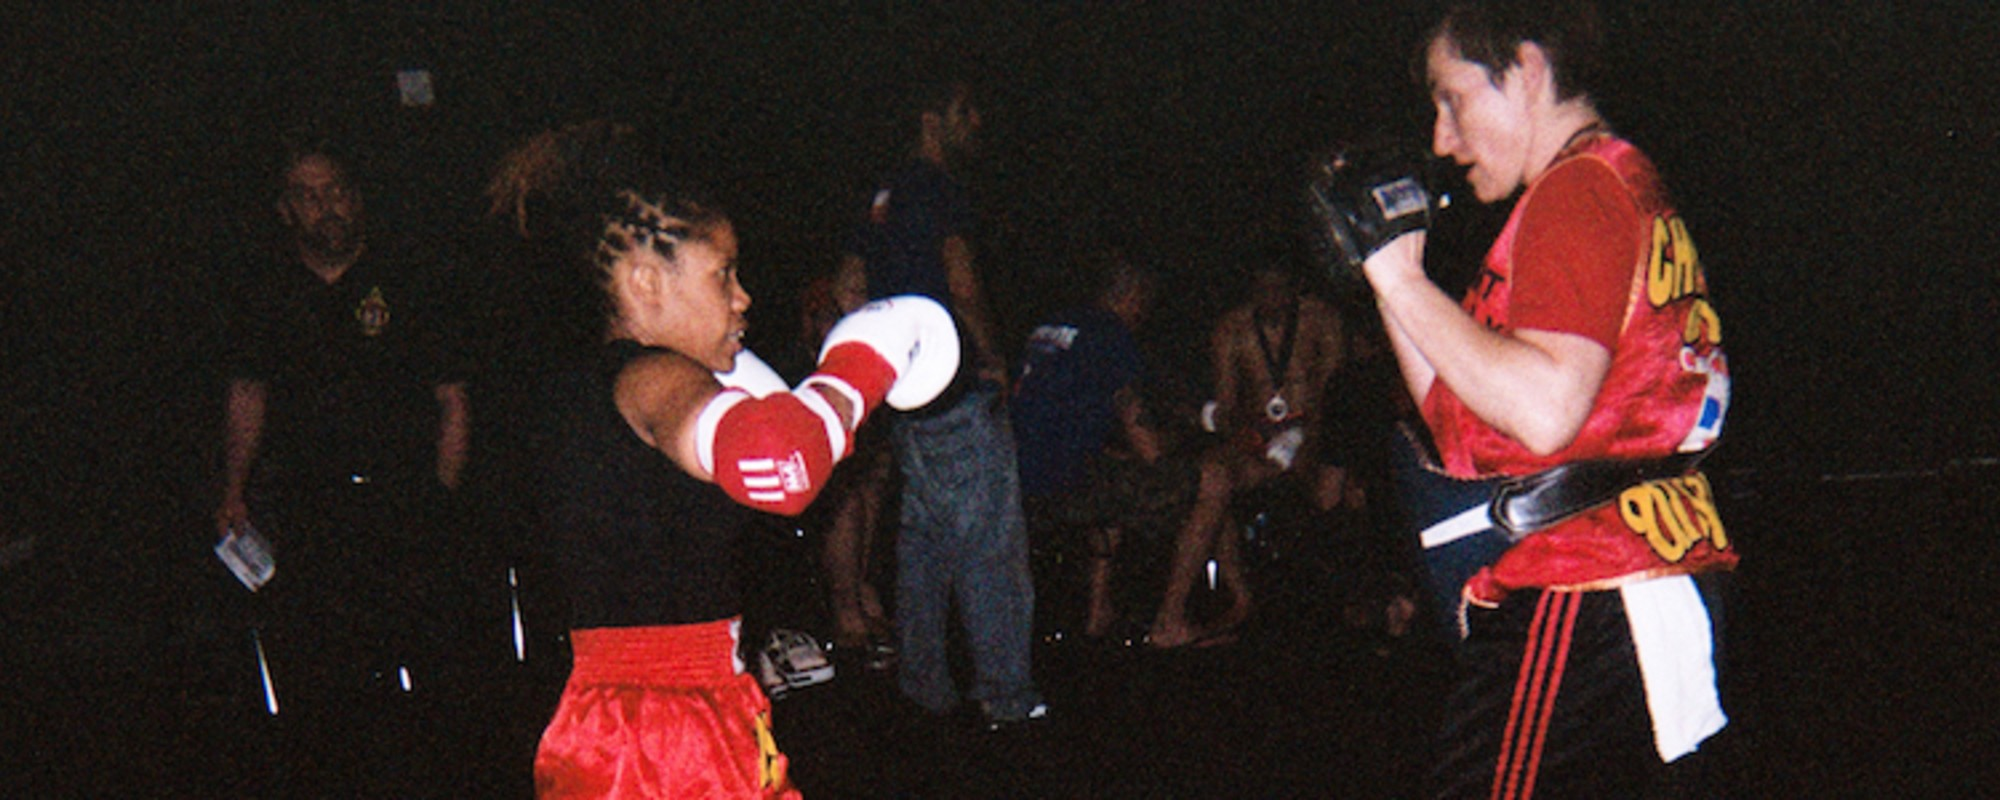 Photos of a Muay Thai Fighter Prepping for a Brawl